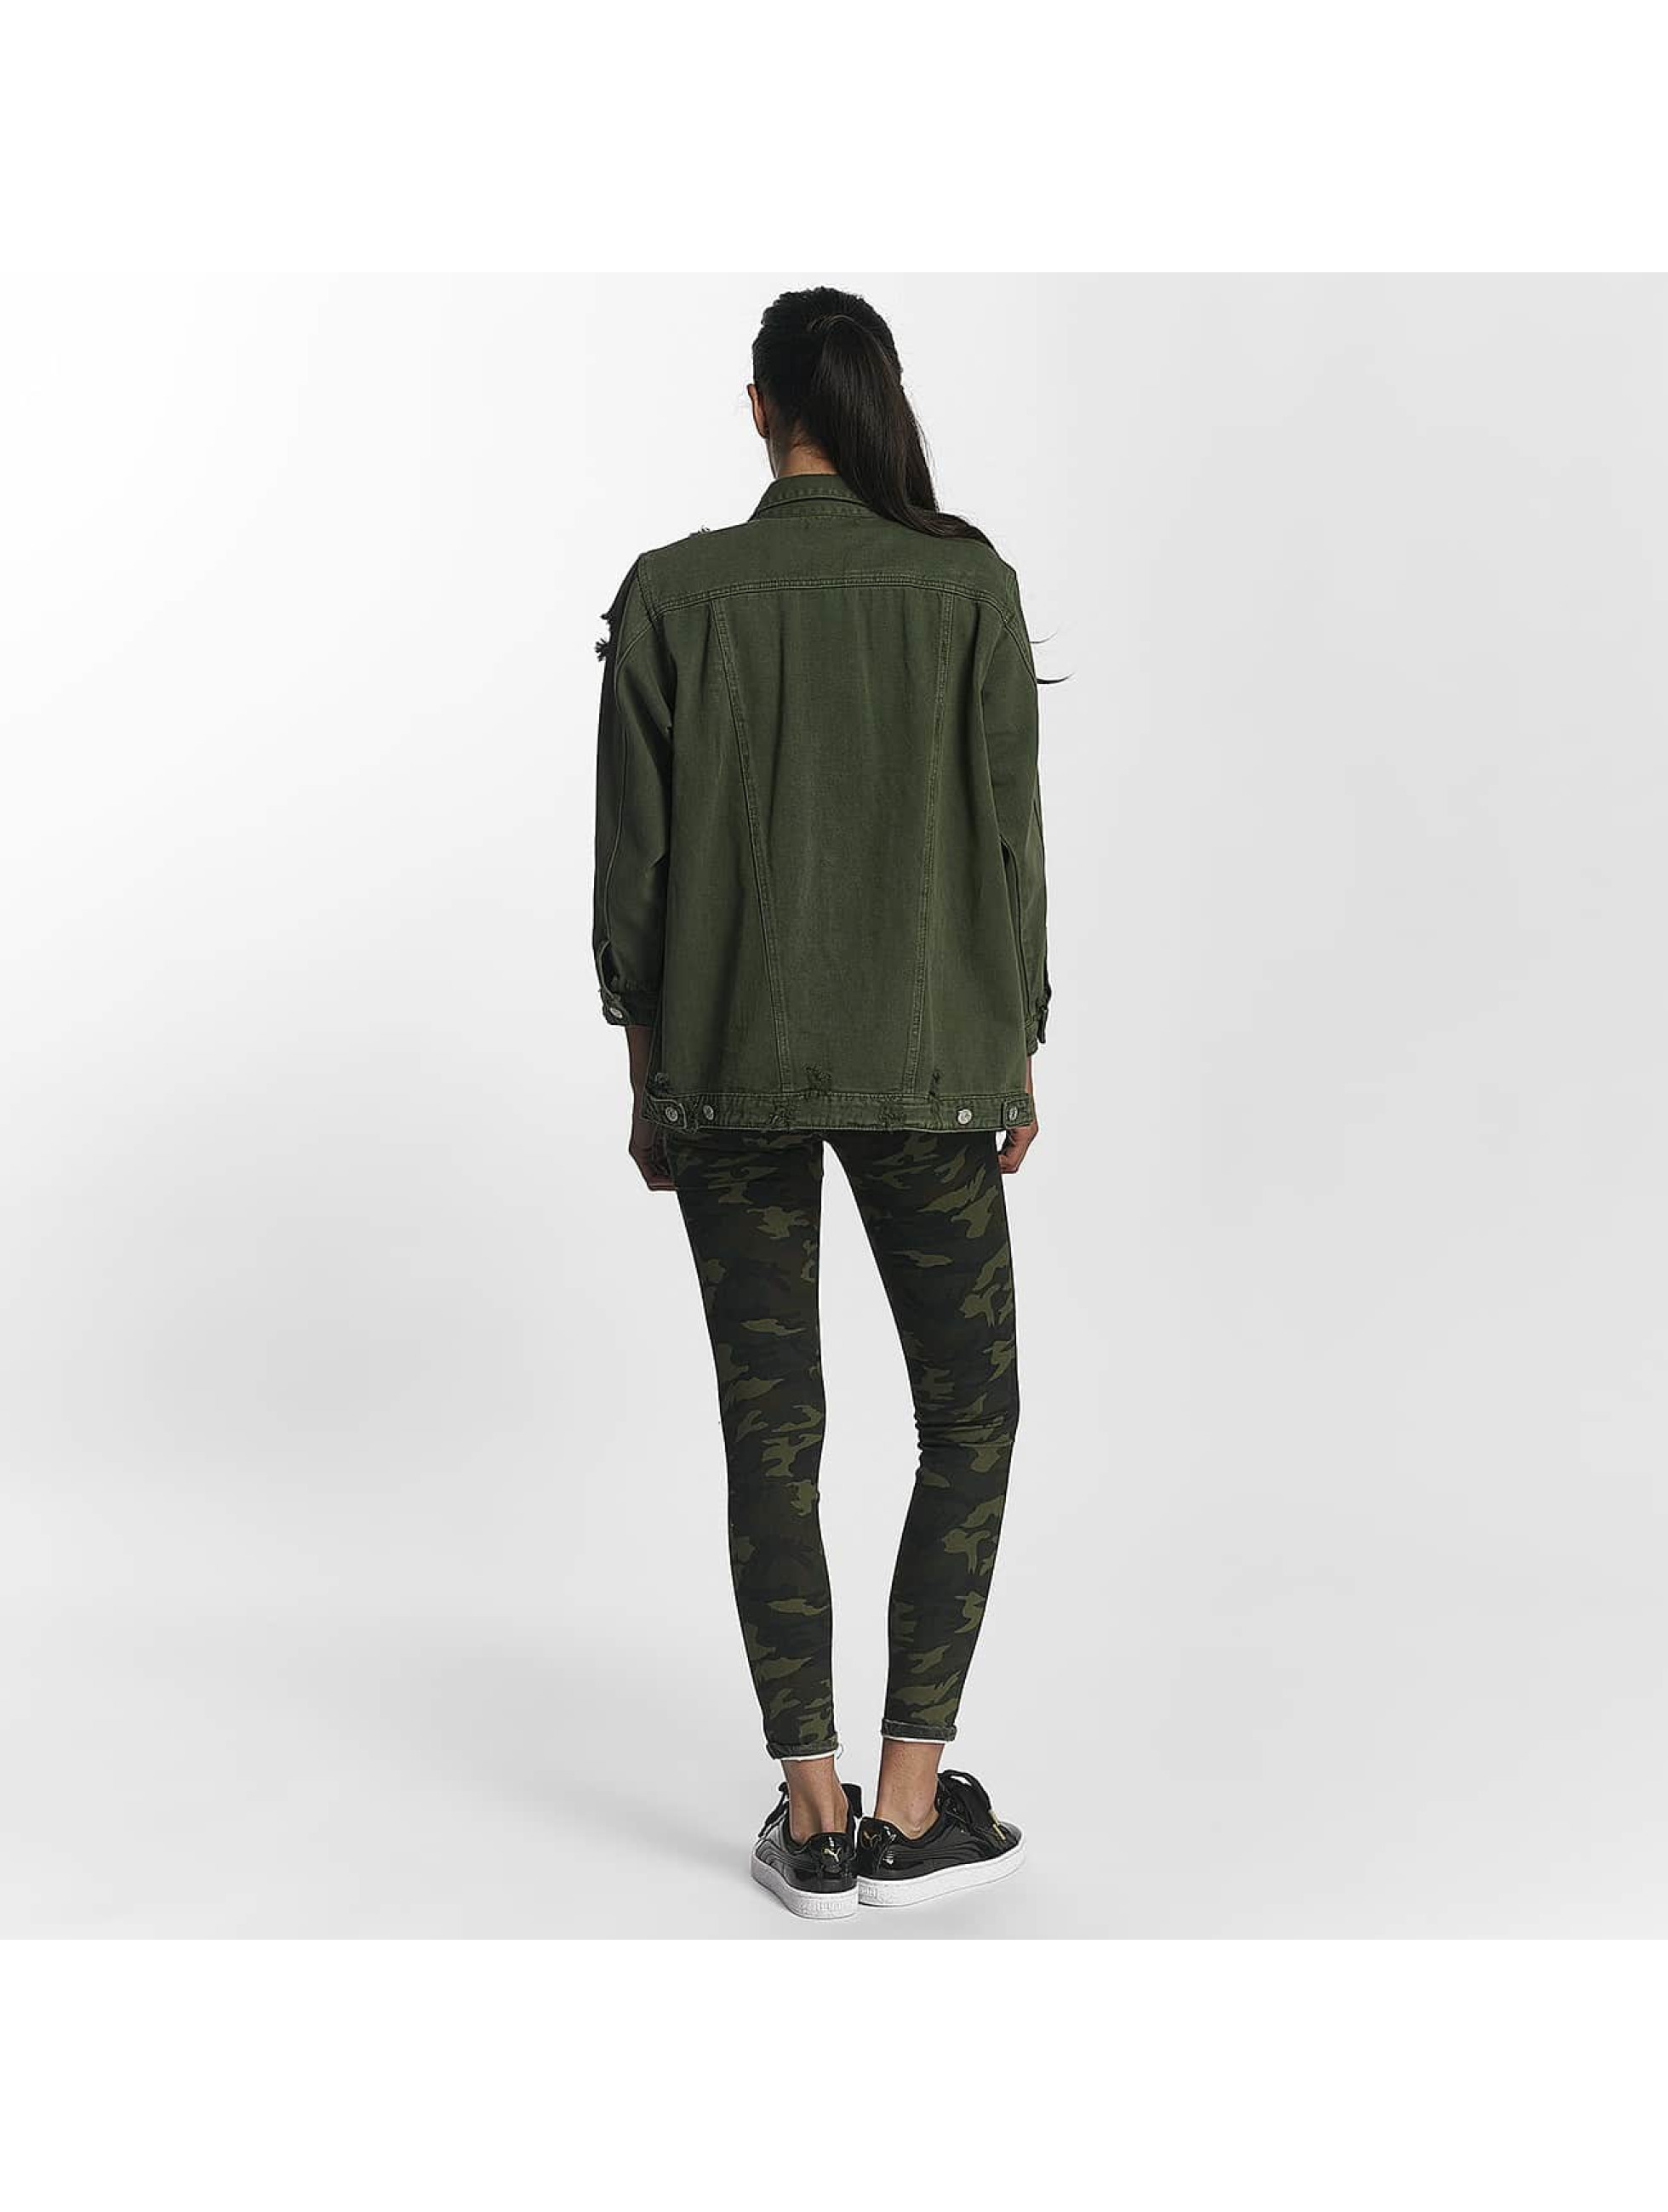 Leg Kings Transitional Jackets Hello Miss khaki